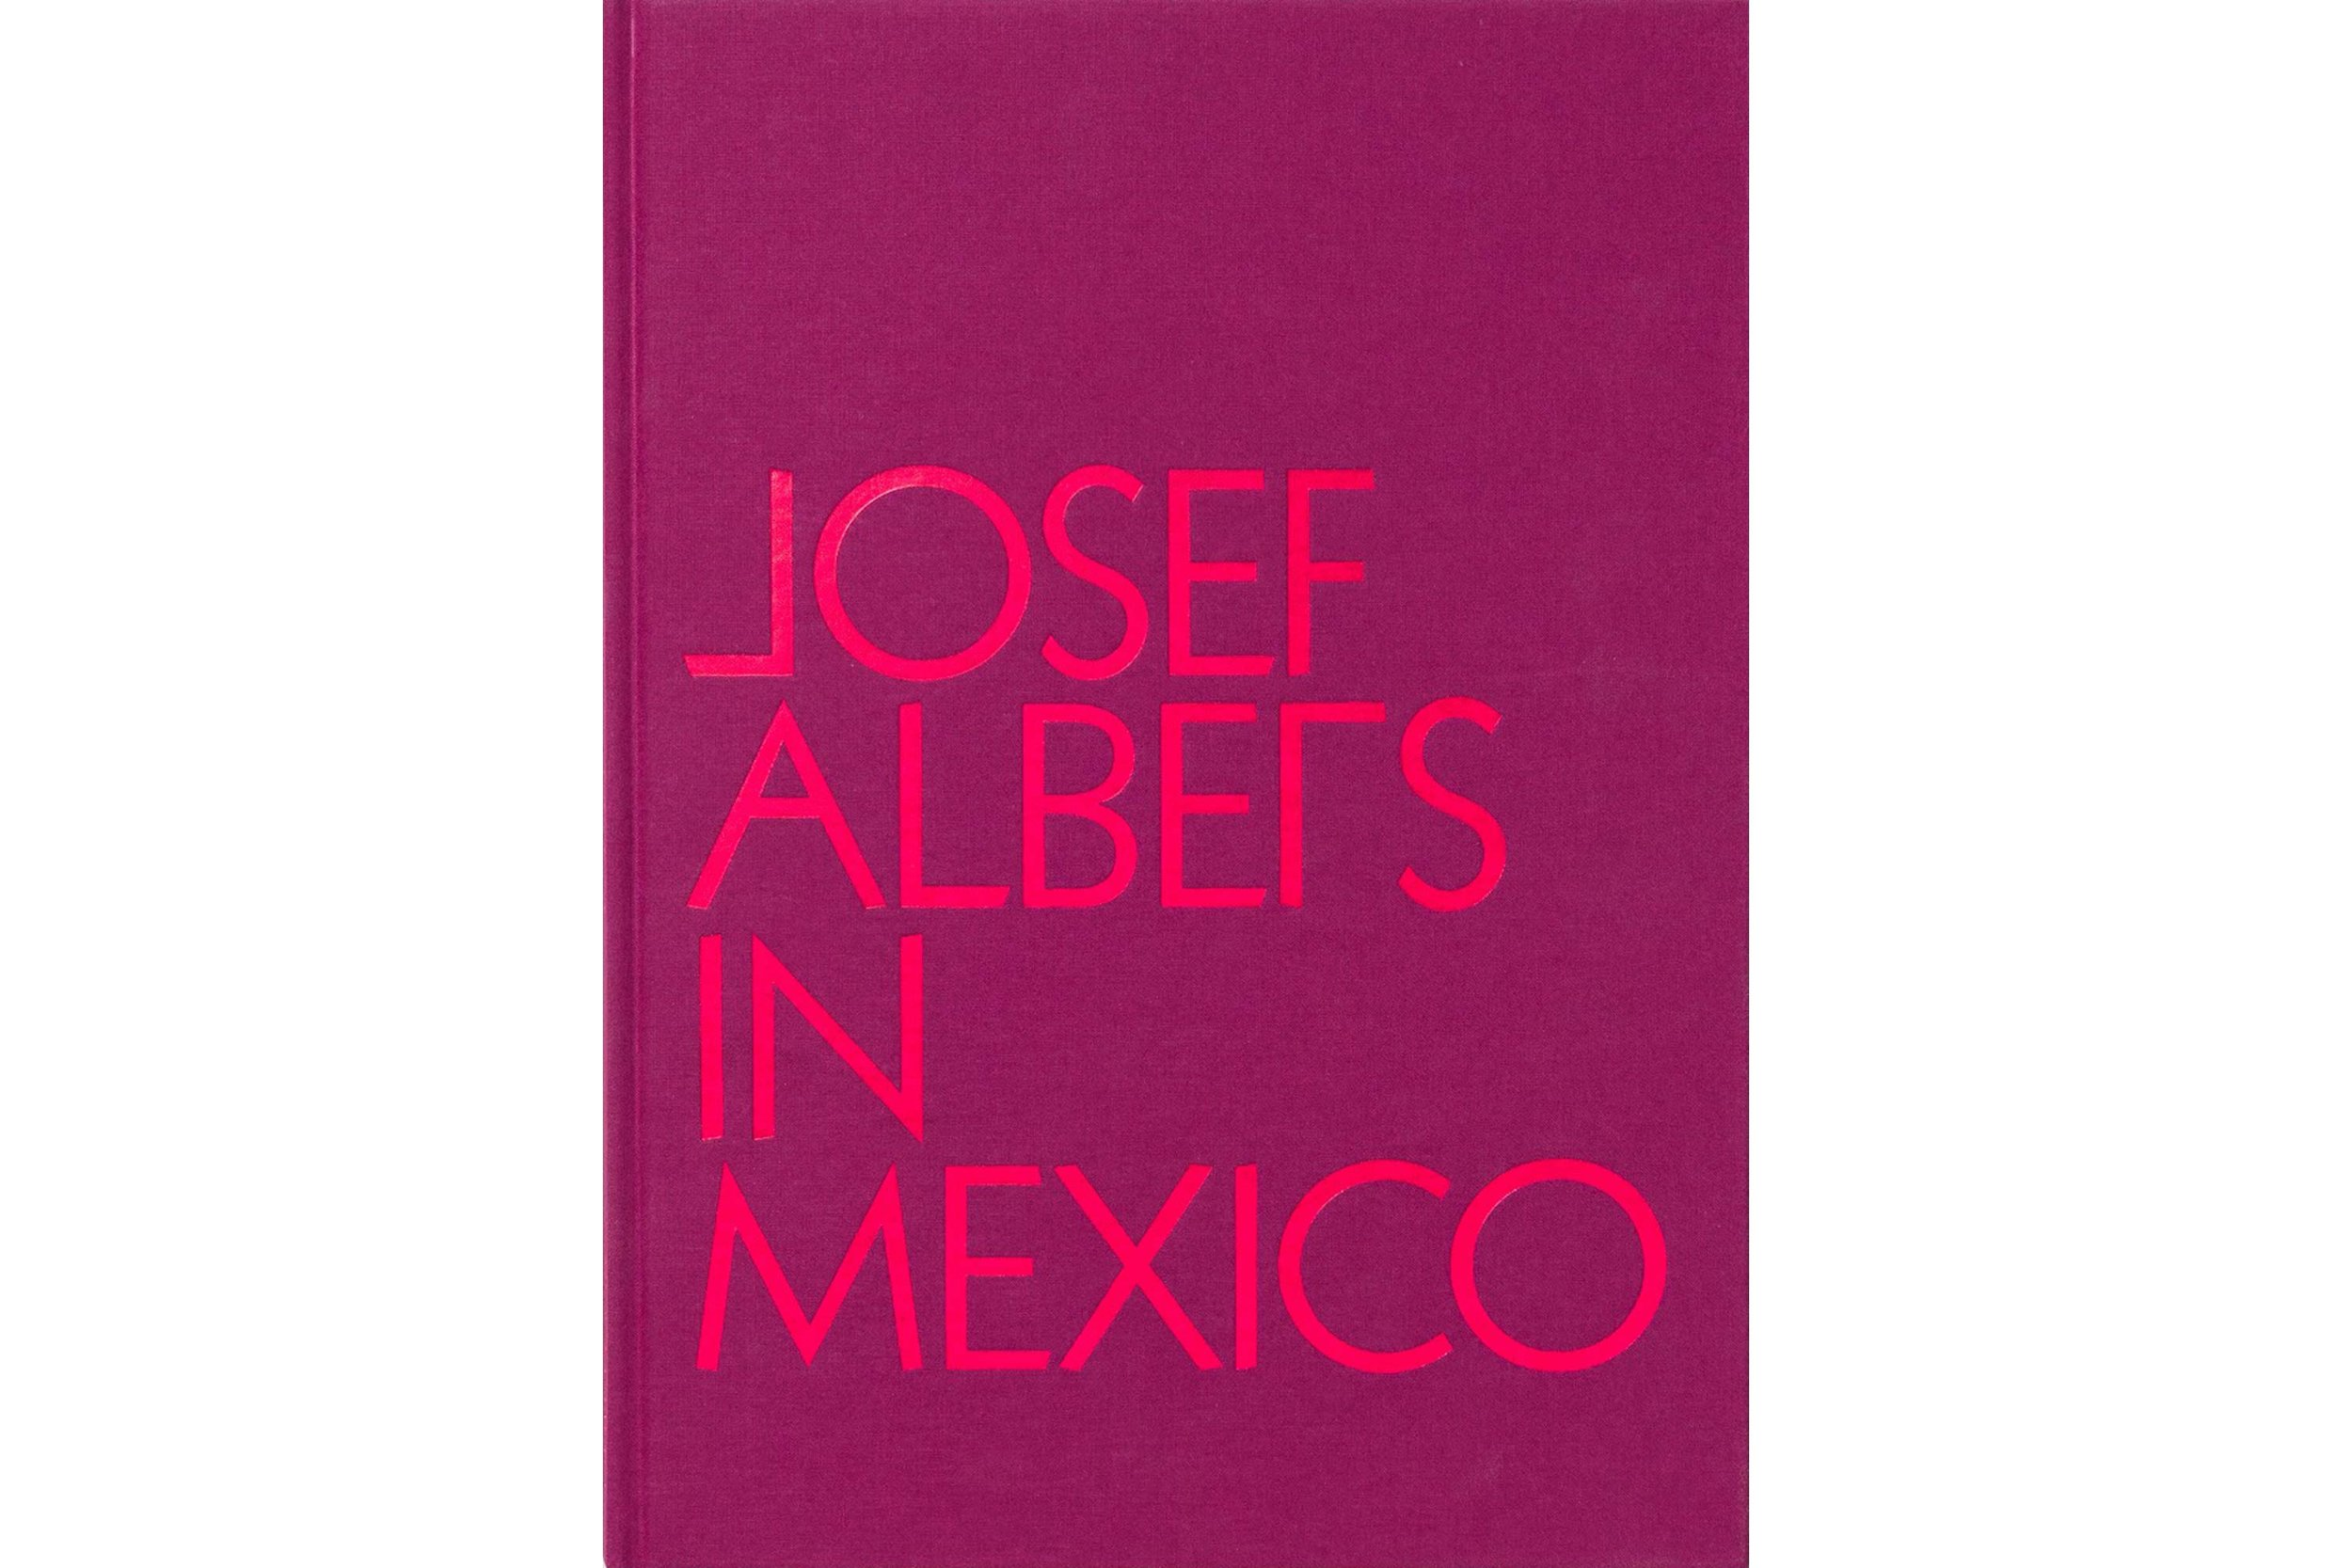 Albers-in-Mexico.jpg